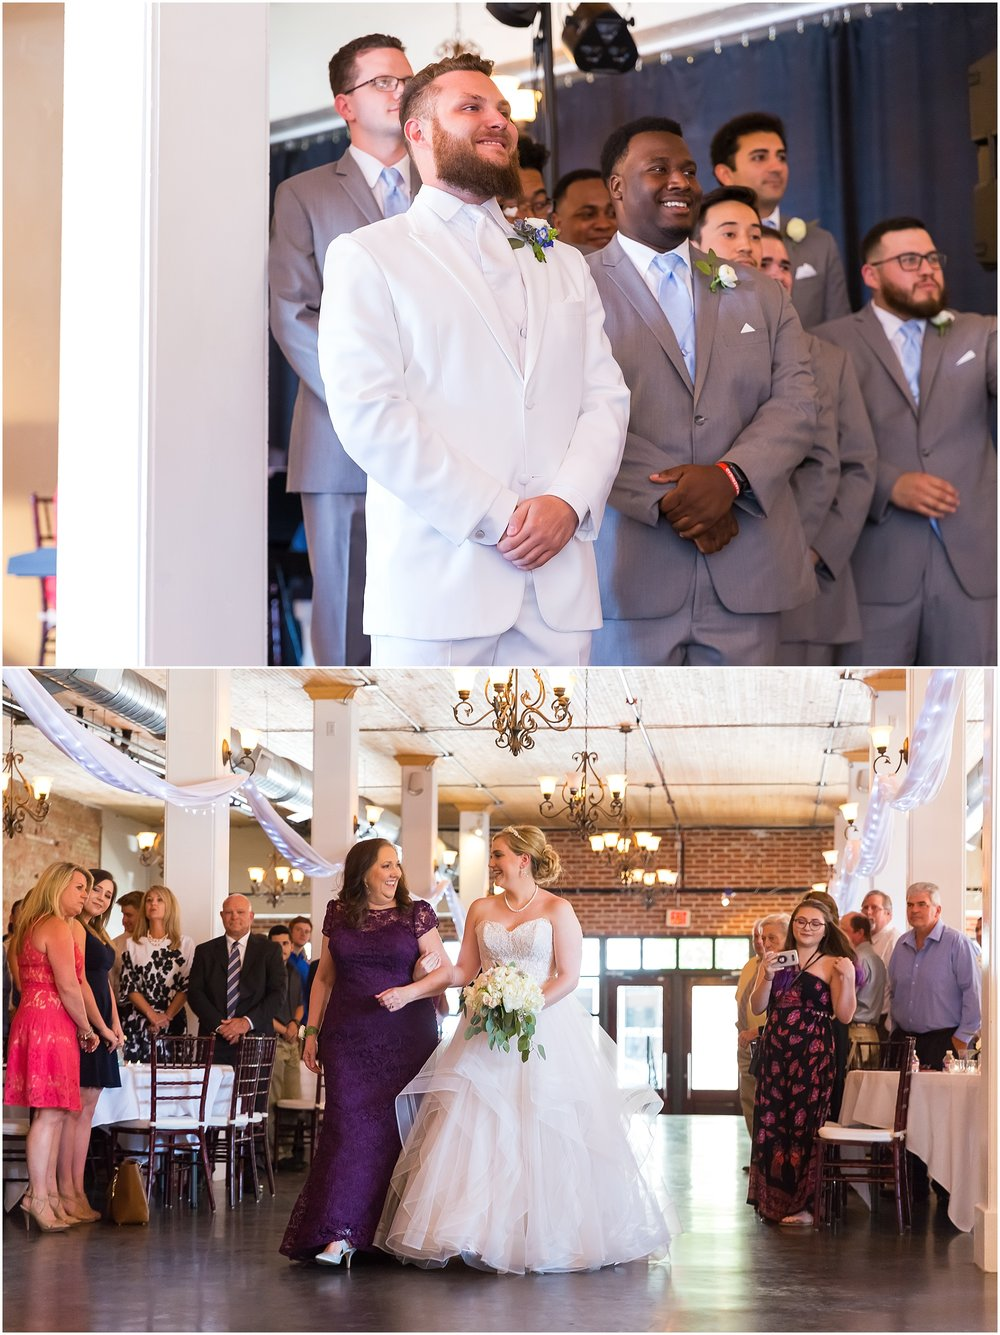 Downtown warehouse wedding in Waco, Texas - www.jasonandmelaina.com